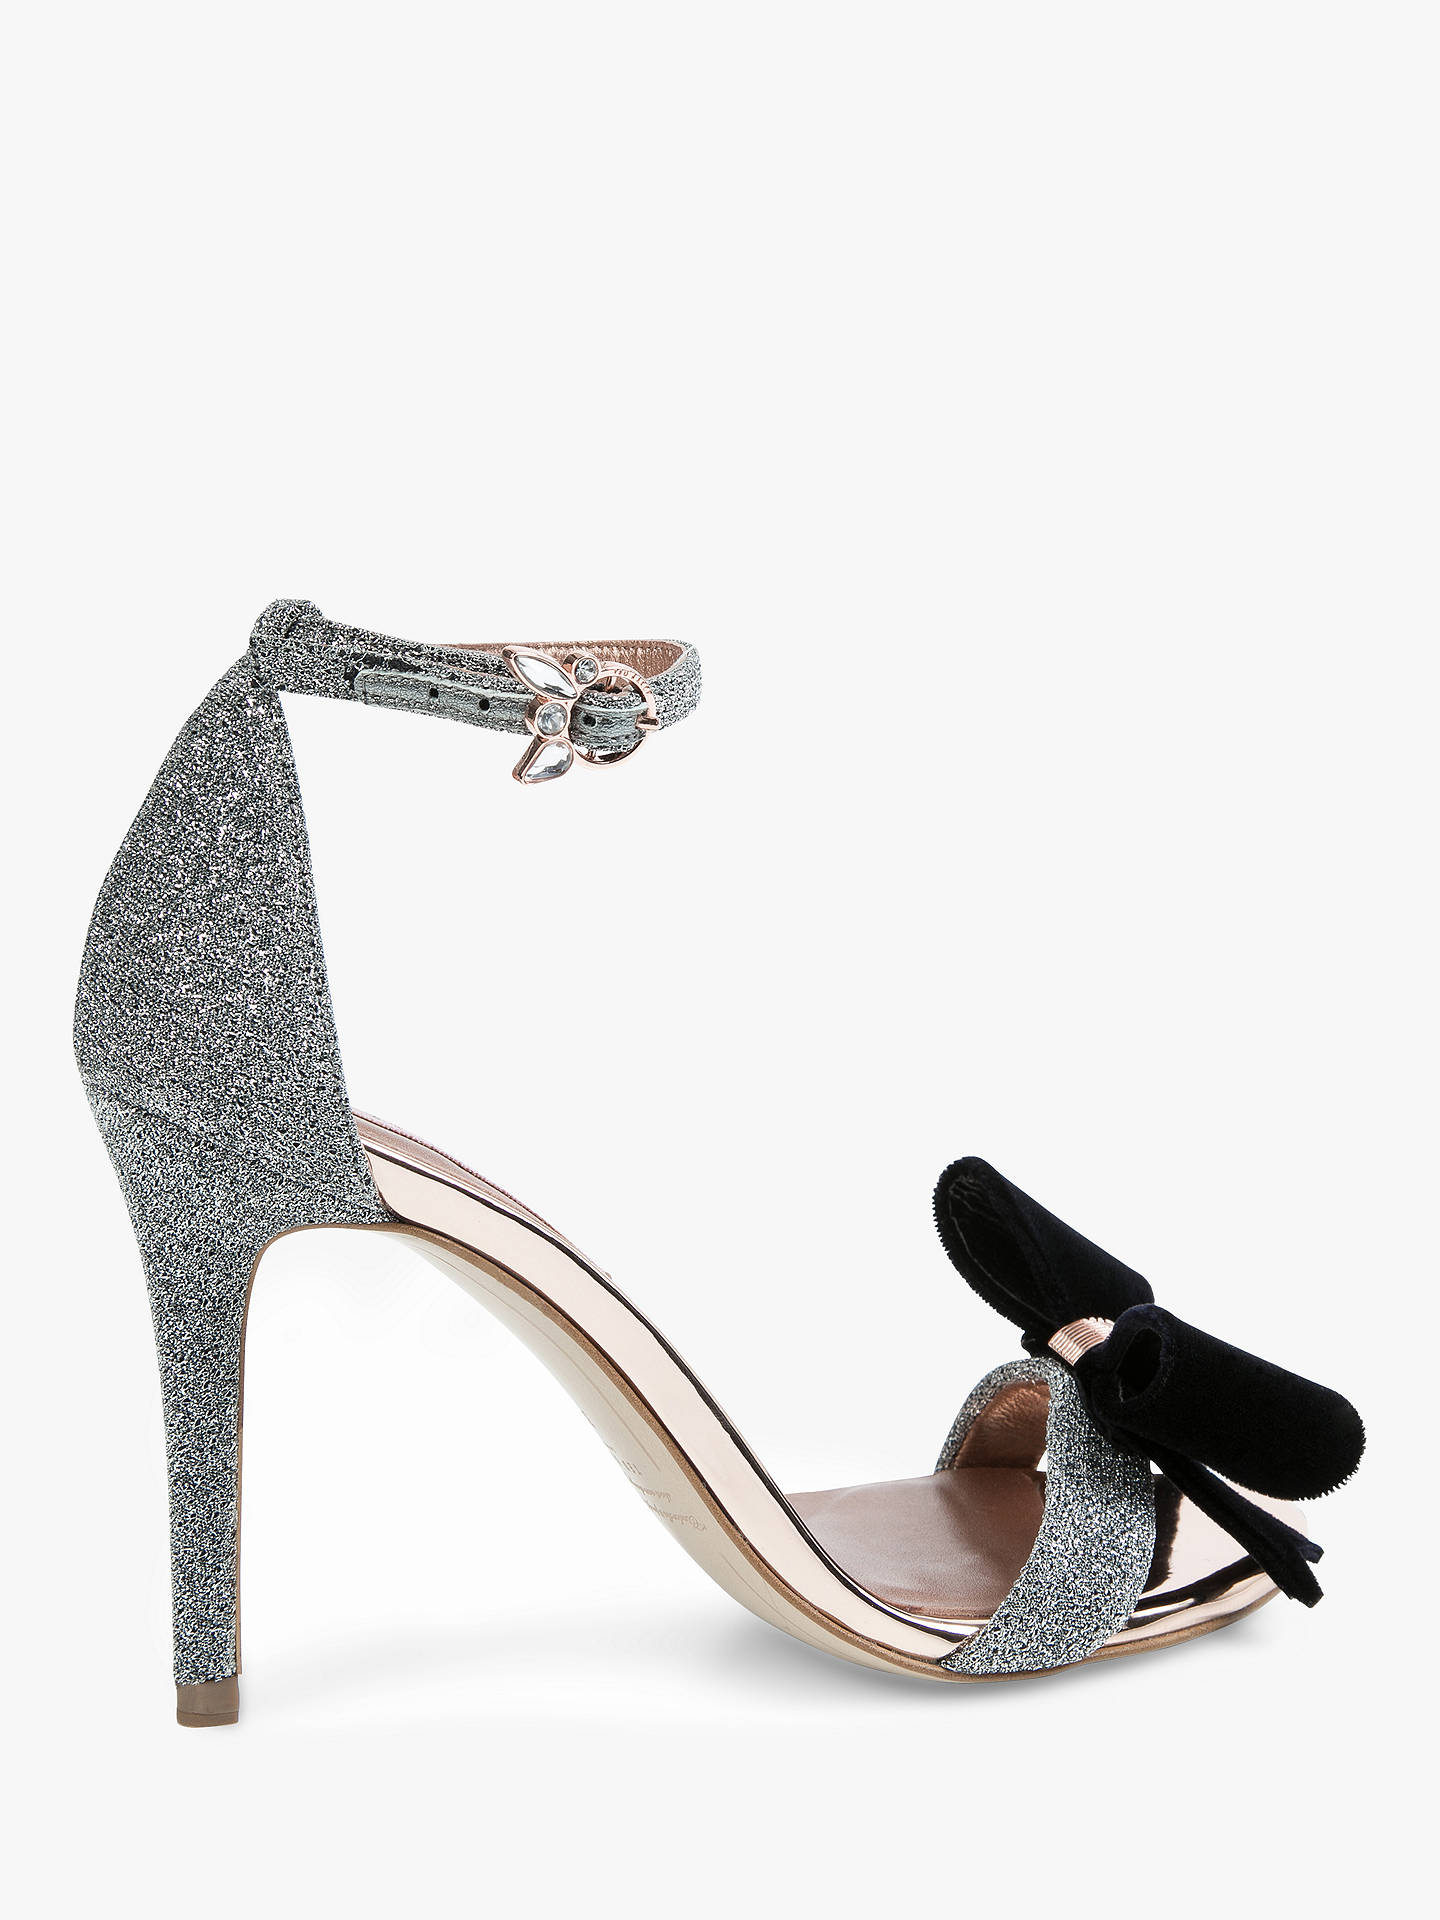 BuyTed Baker Bowdalo Stiletto Heel Sandals, Silver, 3 Online at johnlewis.com